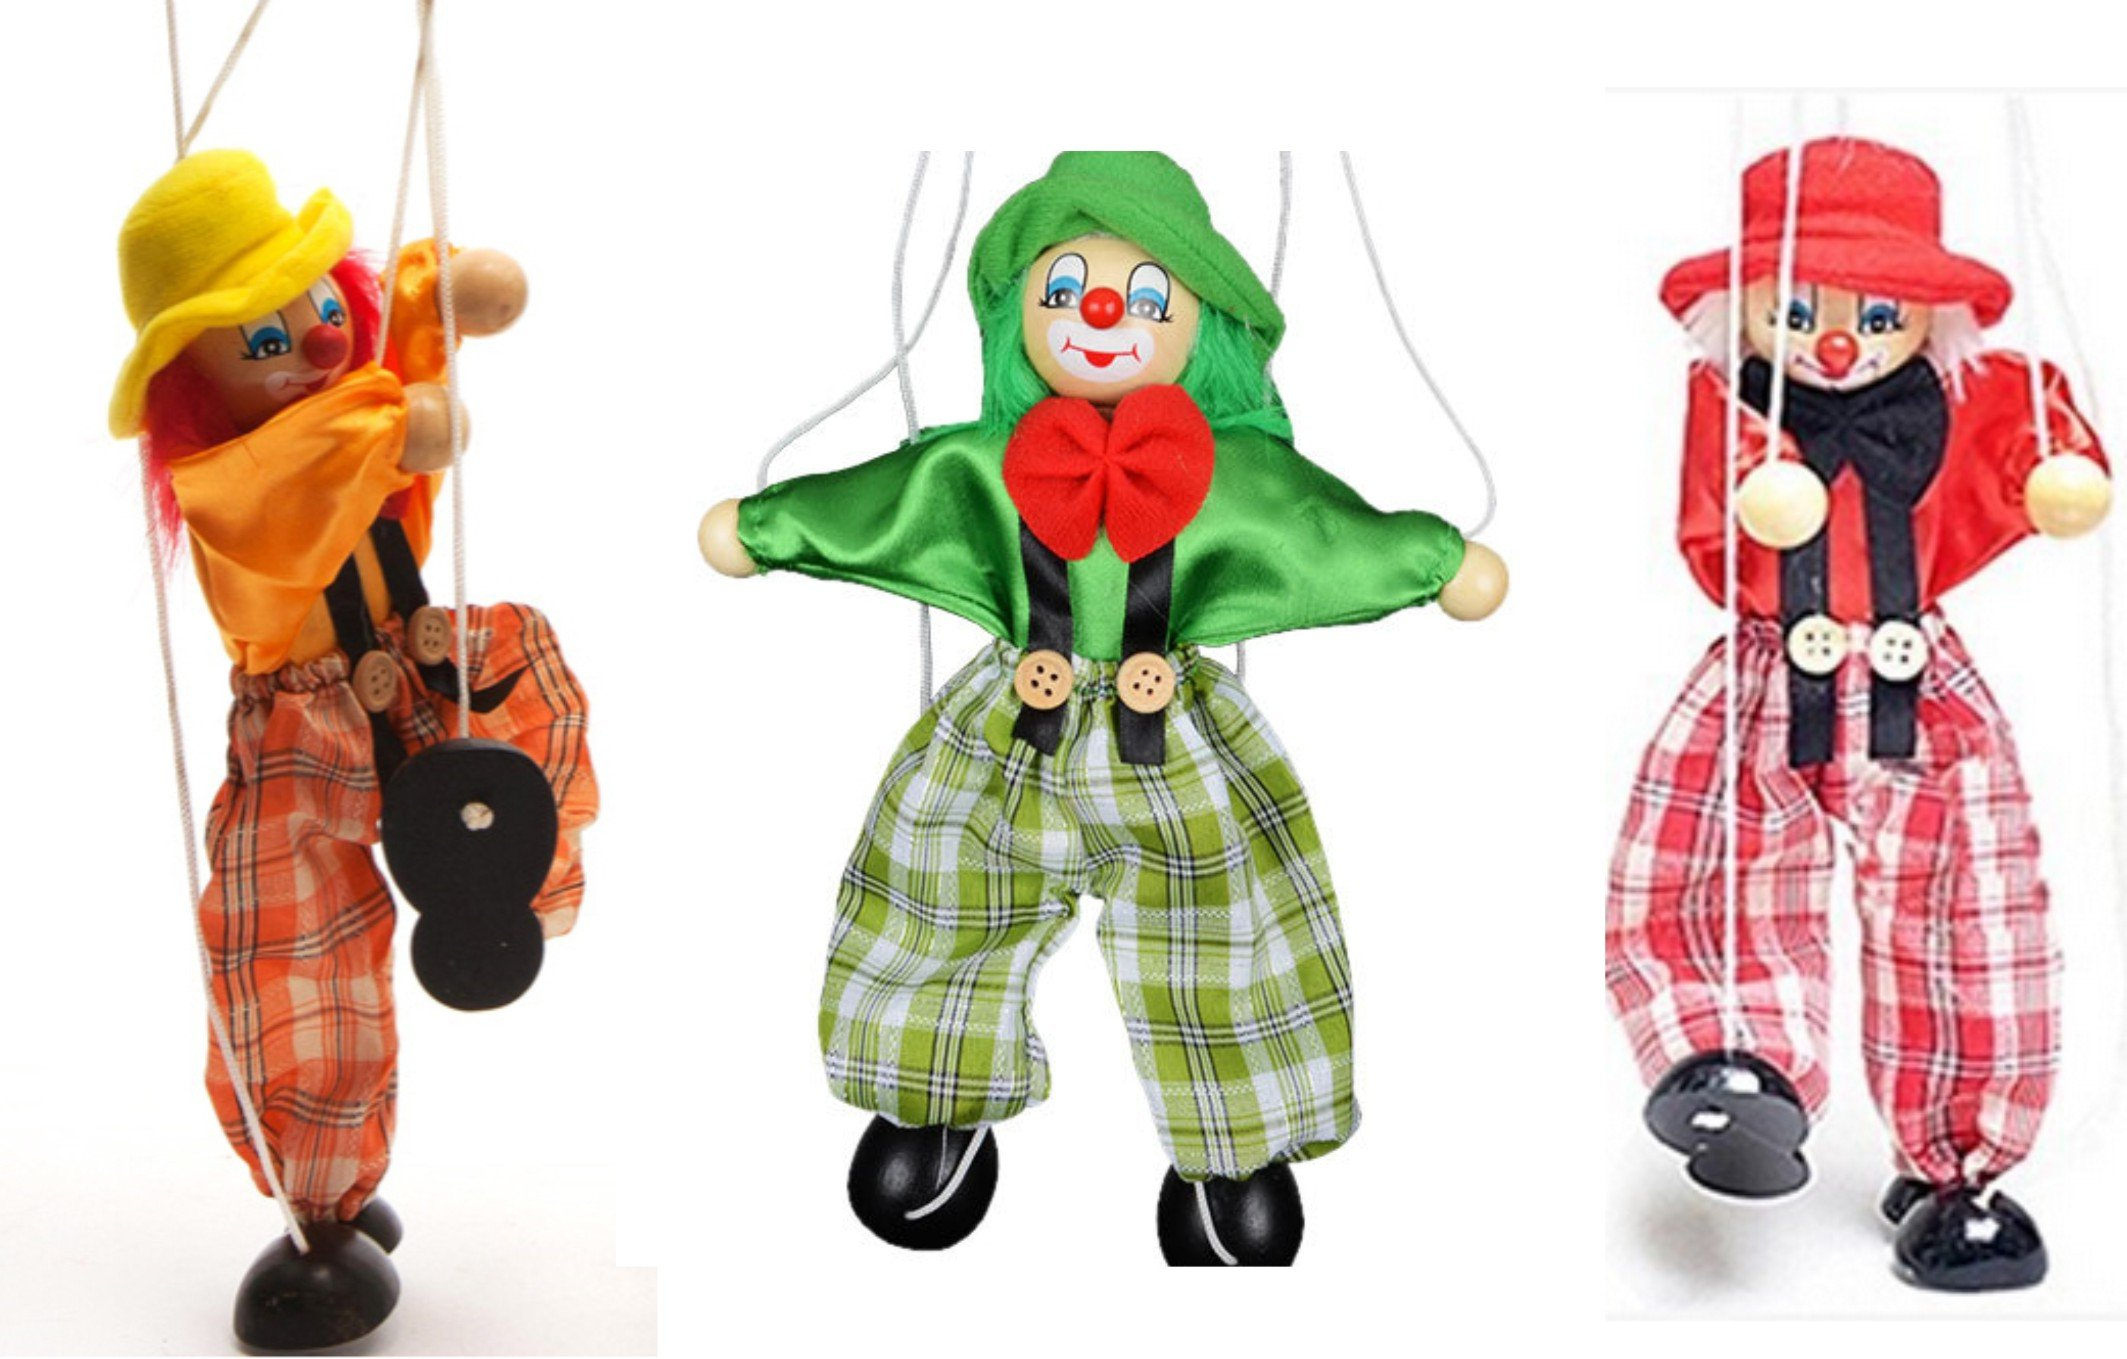 SPARIK ENJOY 3 Packs Clown Hand Marionette Puppet Children's Wooden Marionette Toys Colorful Marionette Puppet Doll Parent-Child Interactive Toys-Yellow and Red, Green